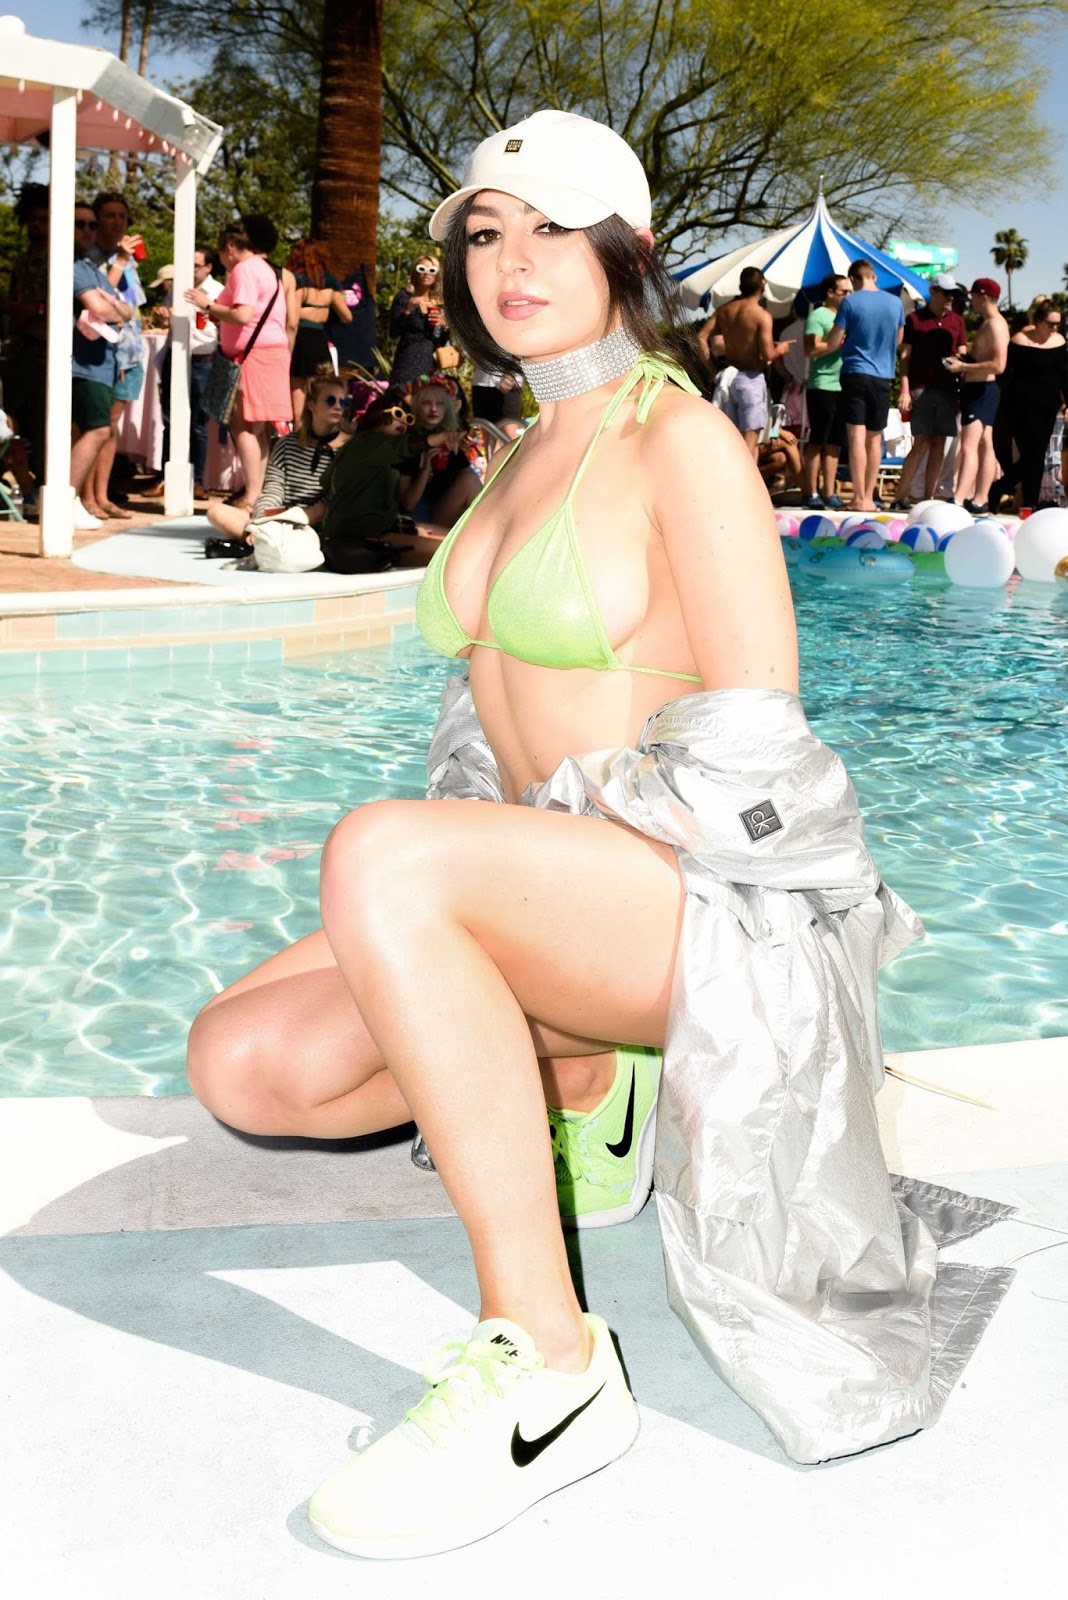 Charli XCX in Bikini, Galore x Grindr Pool Party at Coachella in Palm Springs